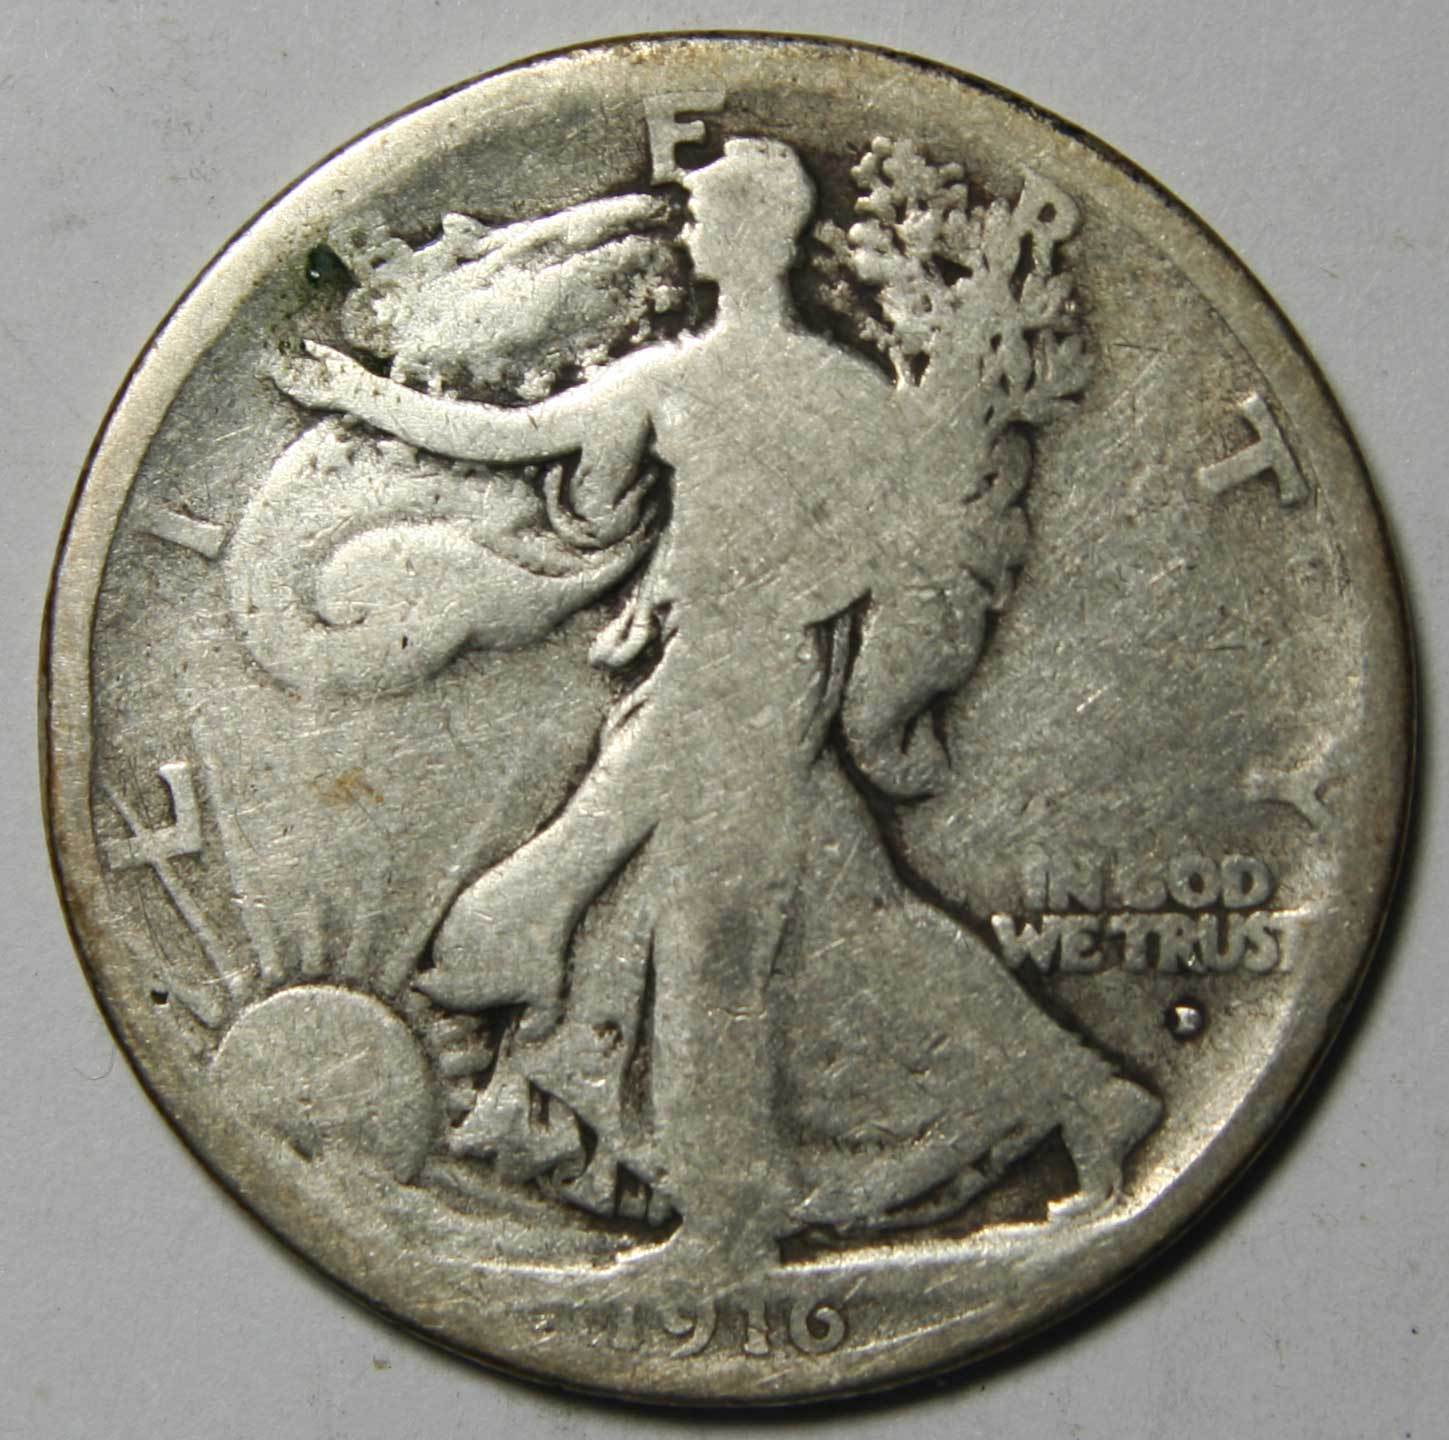 1916D Walking Liberty Half Dollar 90% Silver Coin Lot# MZ 4380